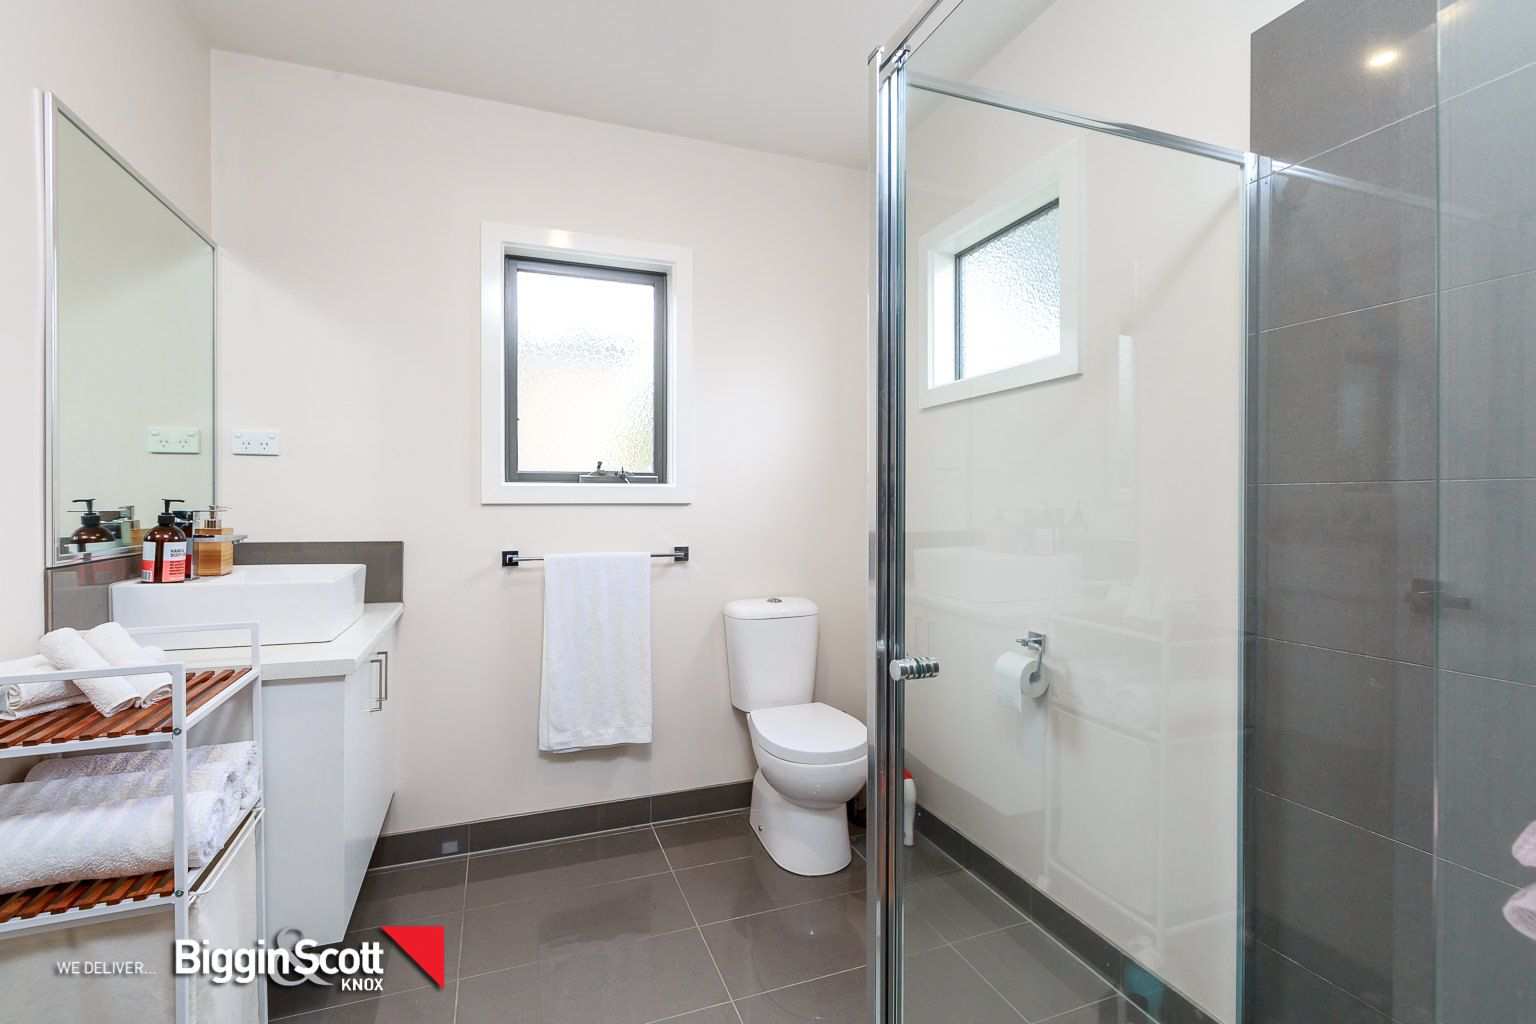 8/13 Allandale Road, Boronia VIC 3155, Image 5